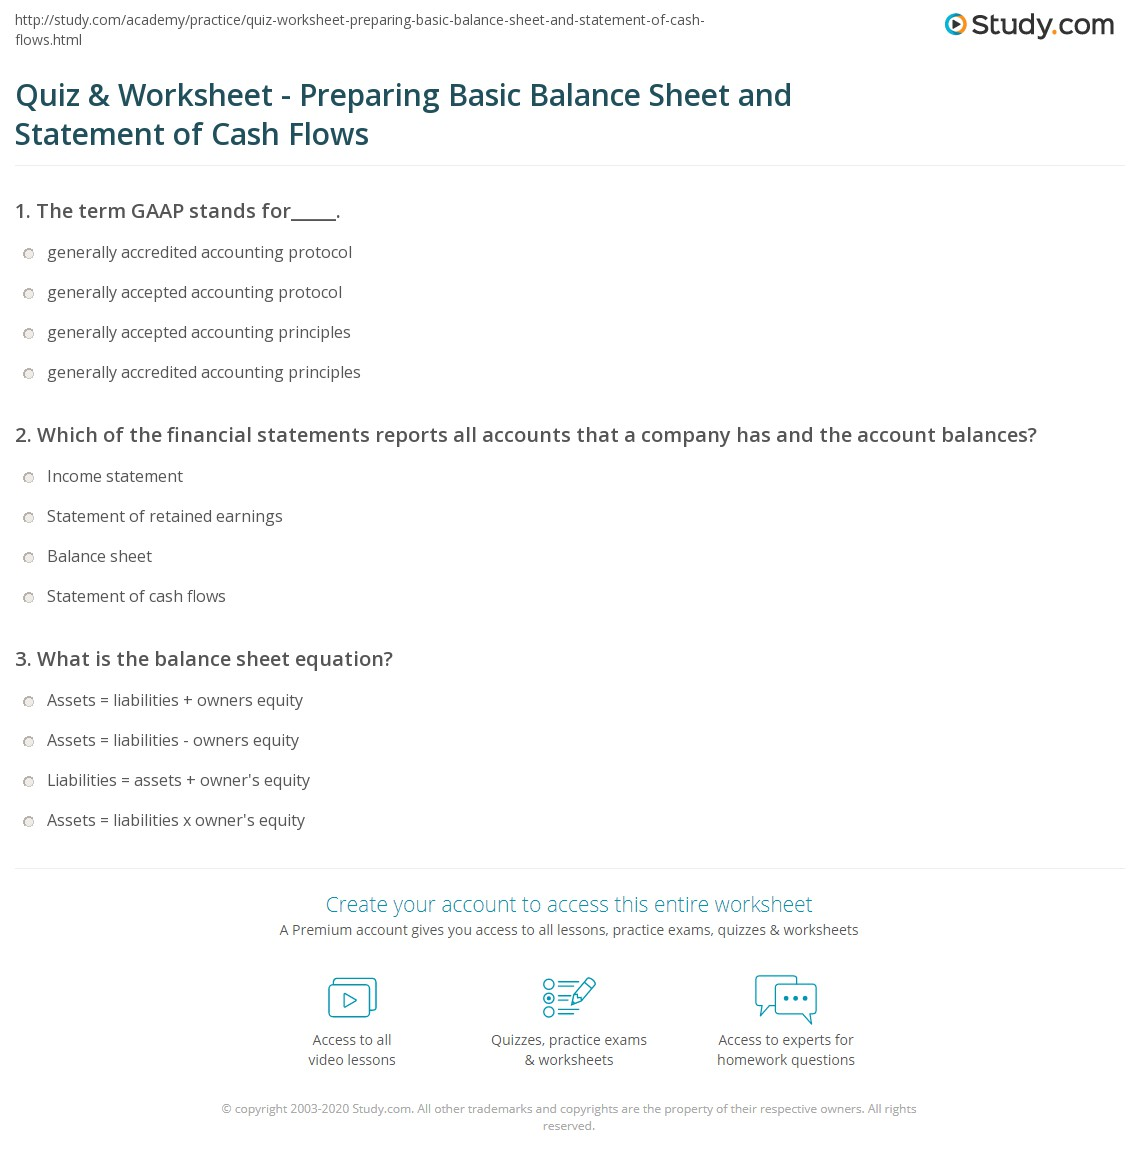 Quiz Worksheet Preparing Basic Balance Sheet and Statement of – Prepare Balance Sheet